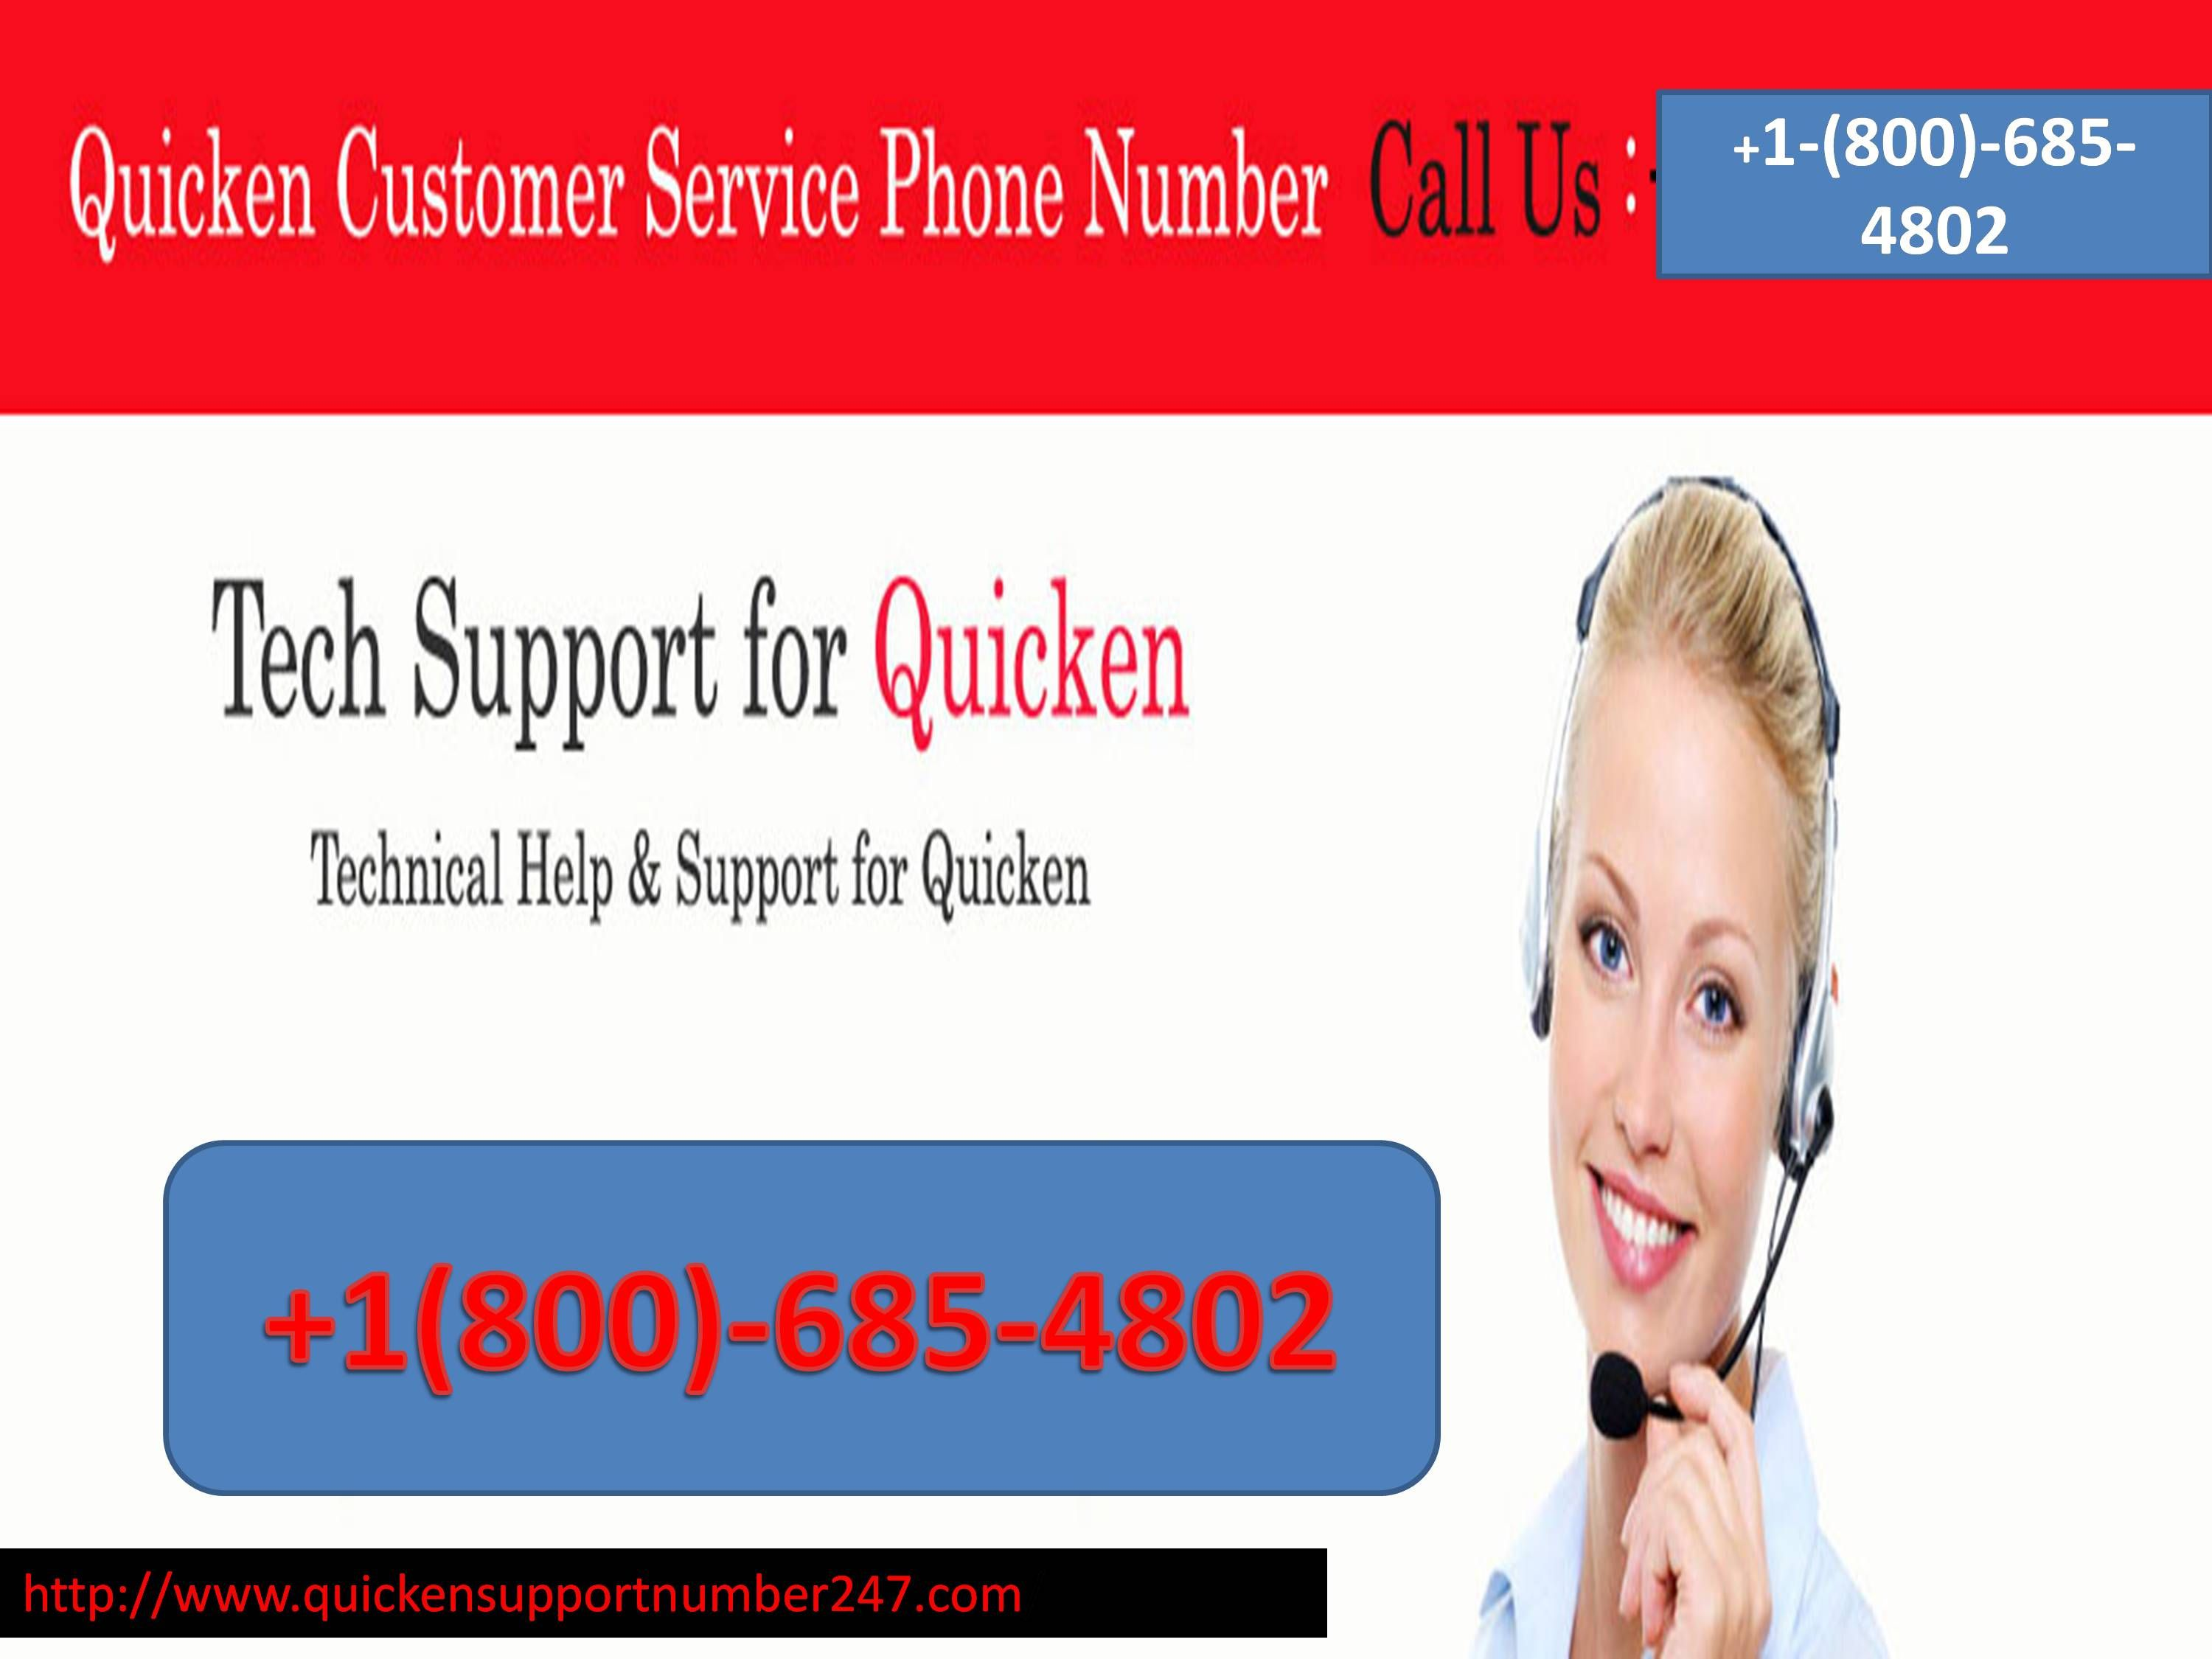 you can dial Quicken customer Service number ++1(800